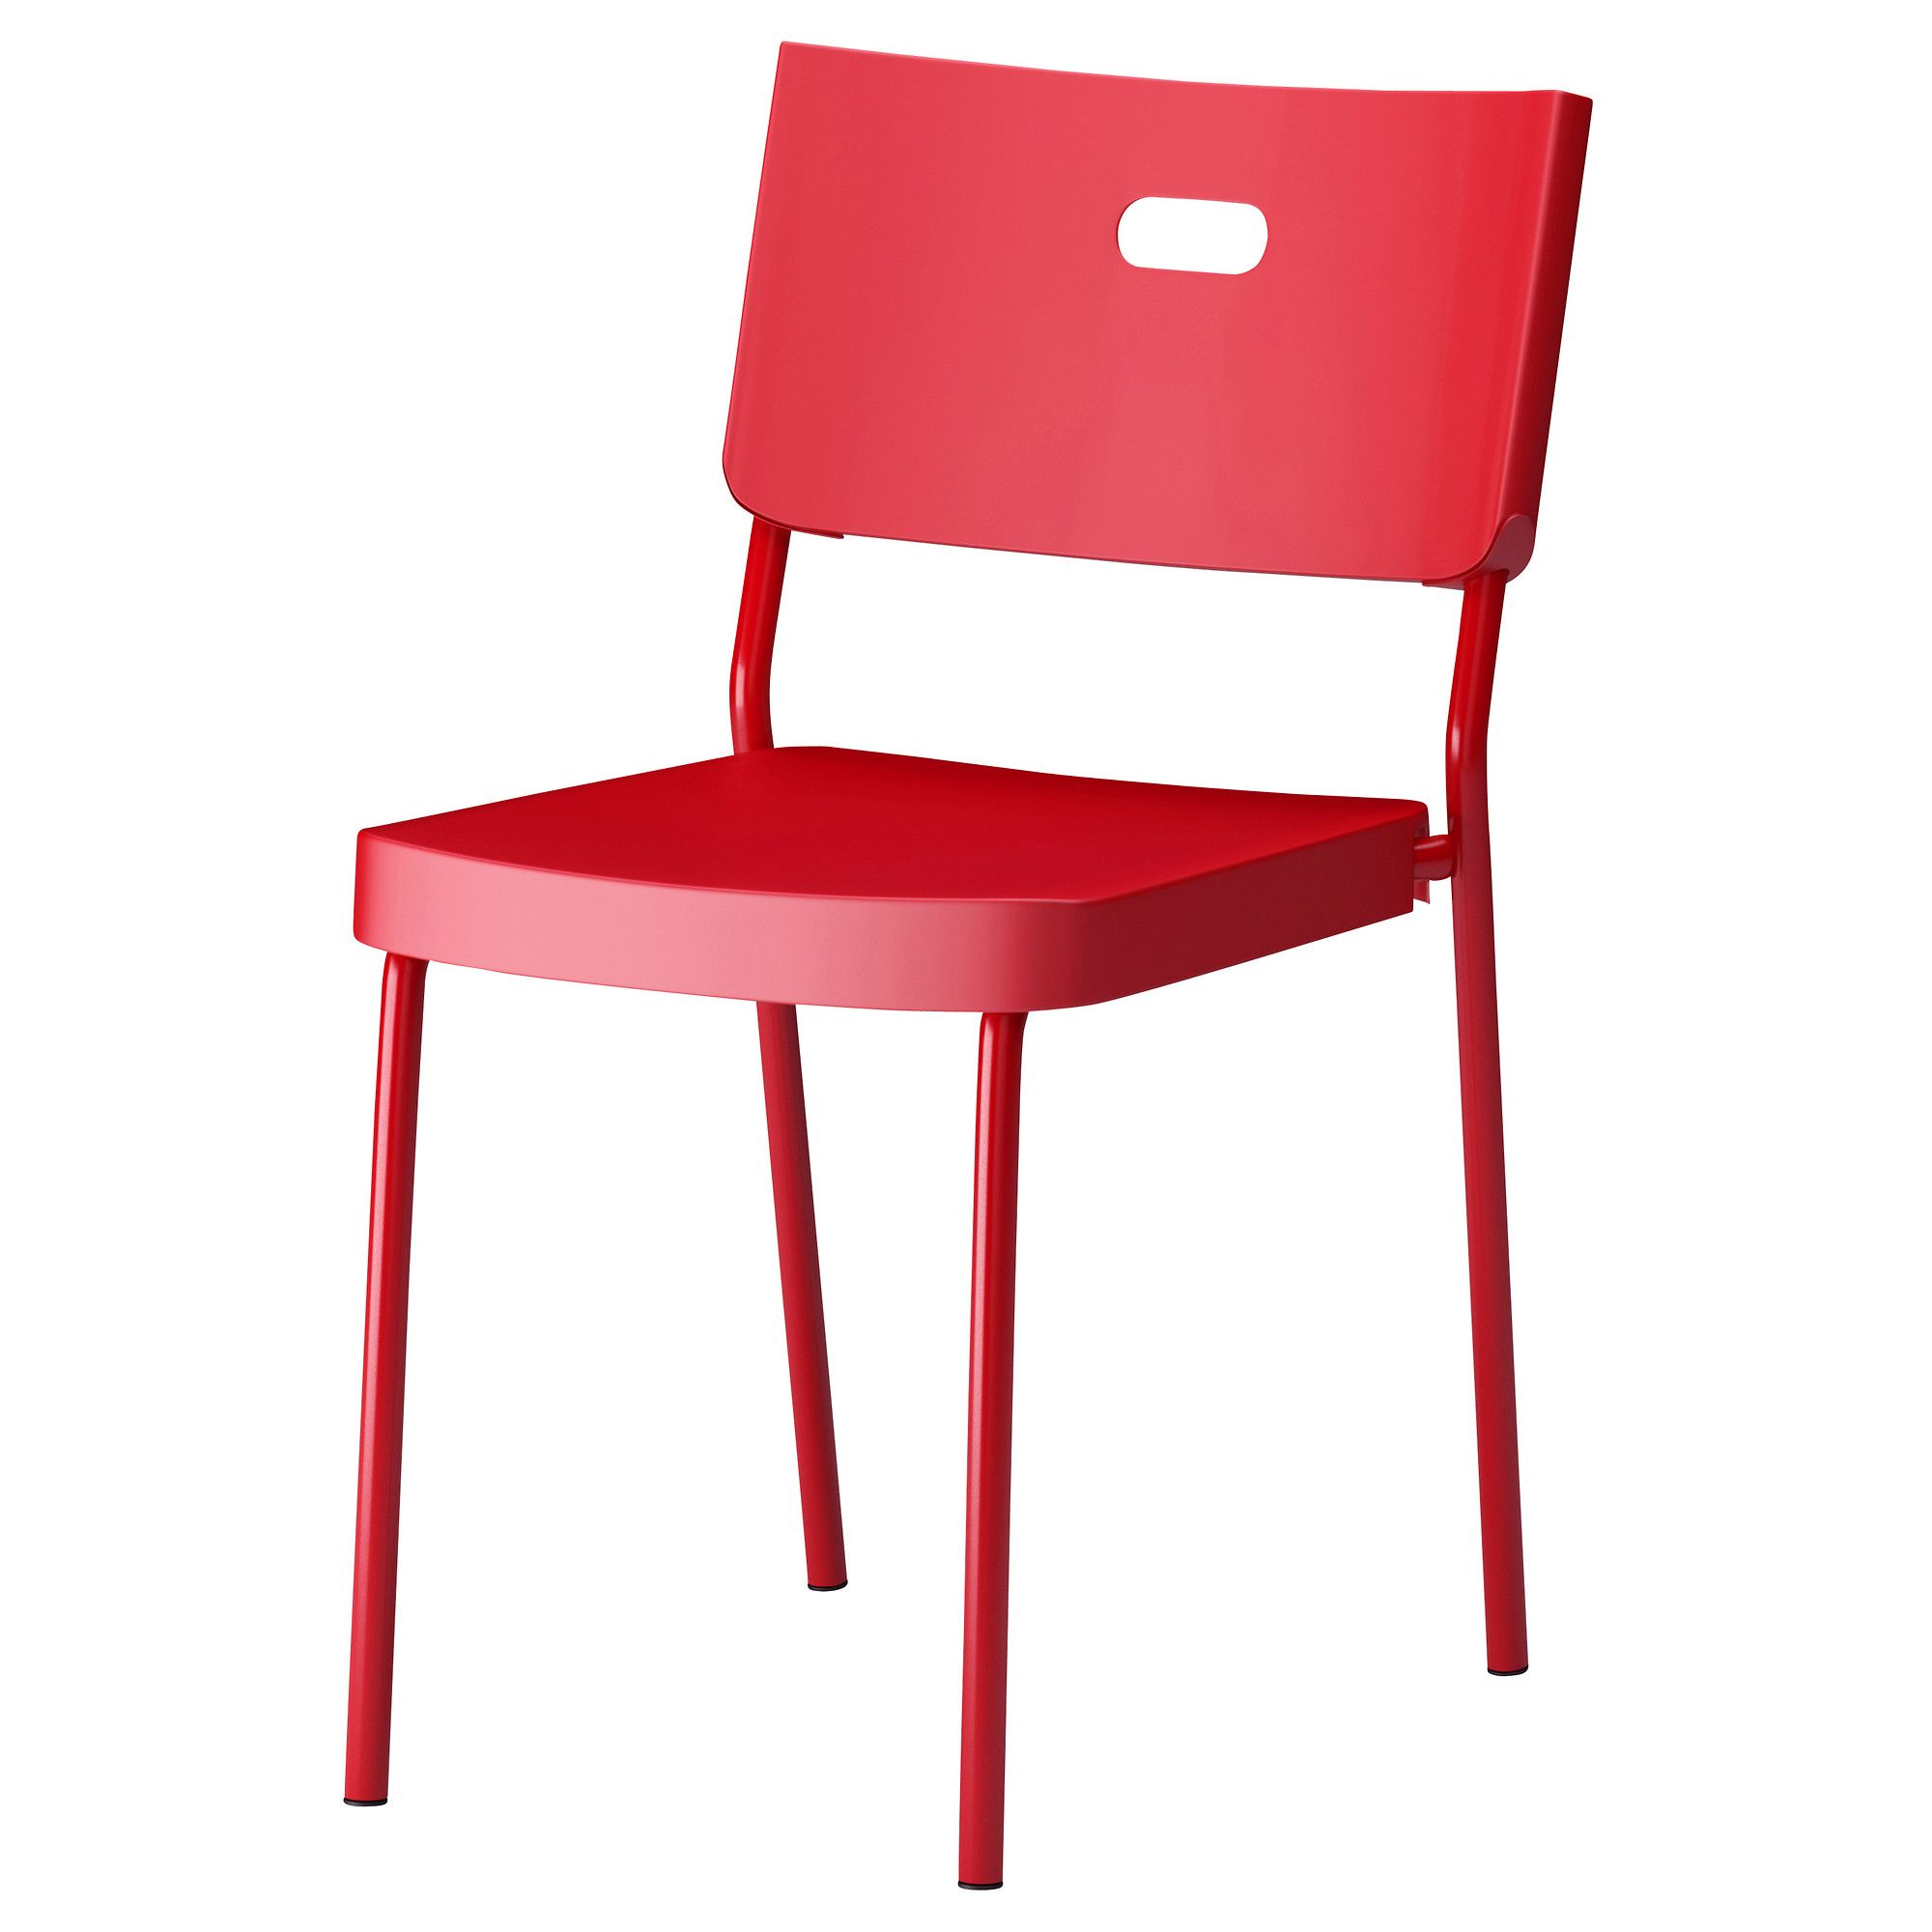 HERMAN Chair red IKEA $15 Pop Art Pinterest